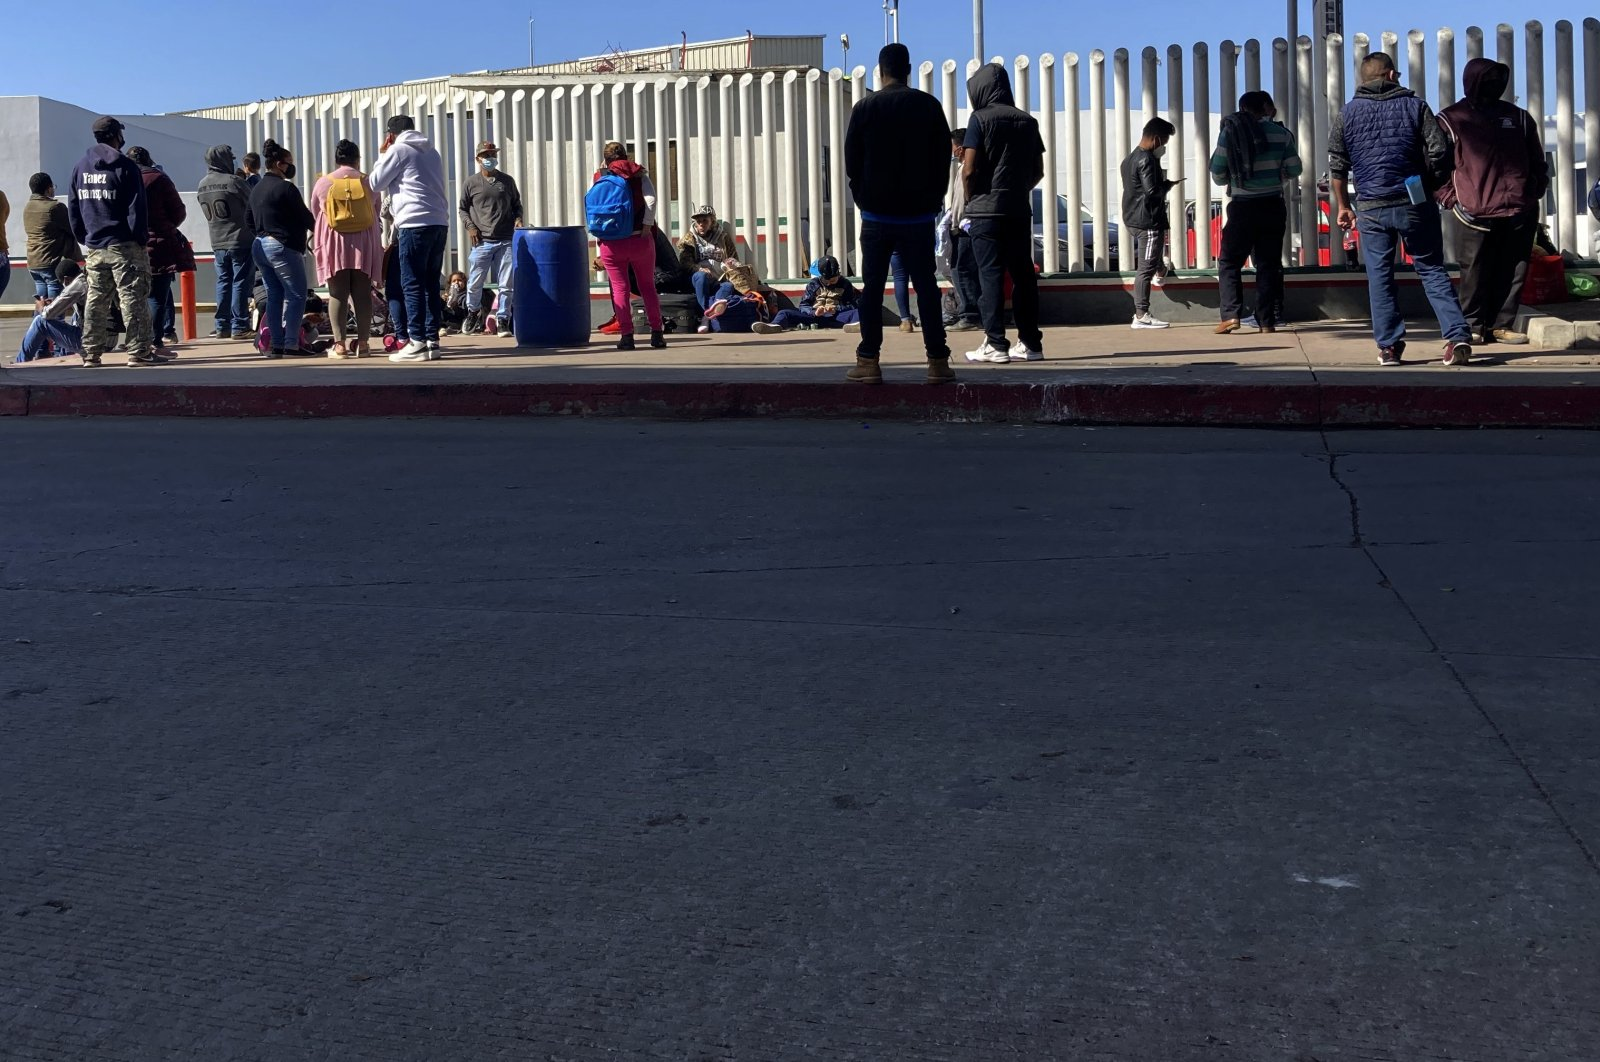 Migrants waiting to cross into the United States wait for news at the border crossing Wednesday, Feb. 17, 2021, in Tijuana, Mexico. (AP Photo)